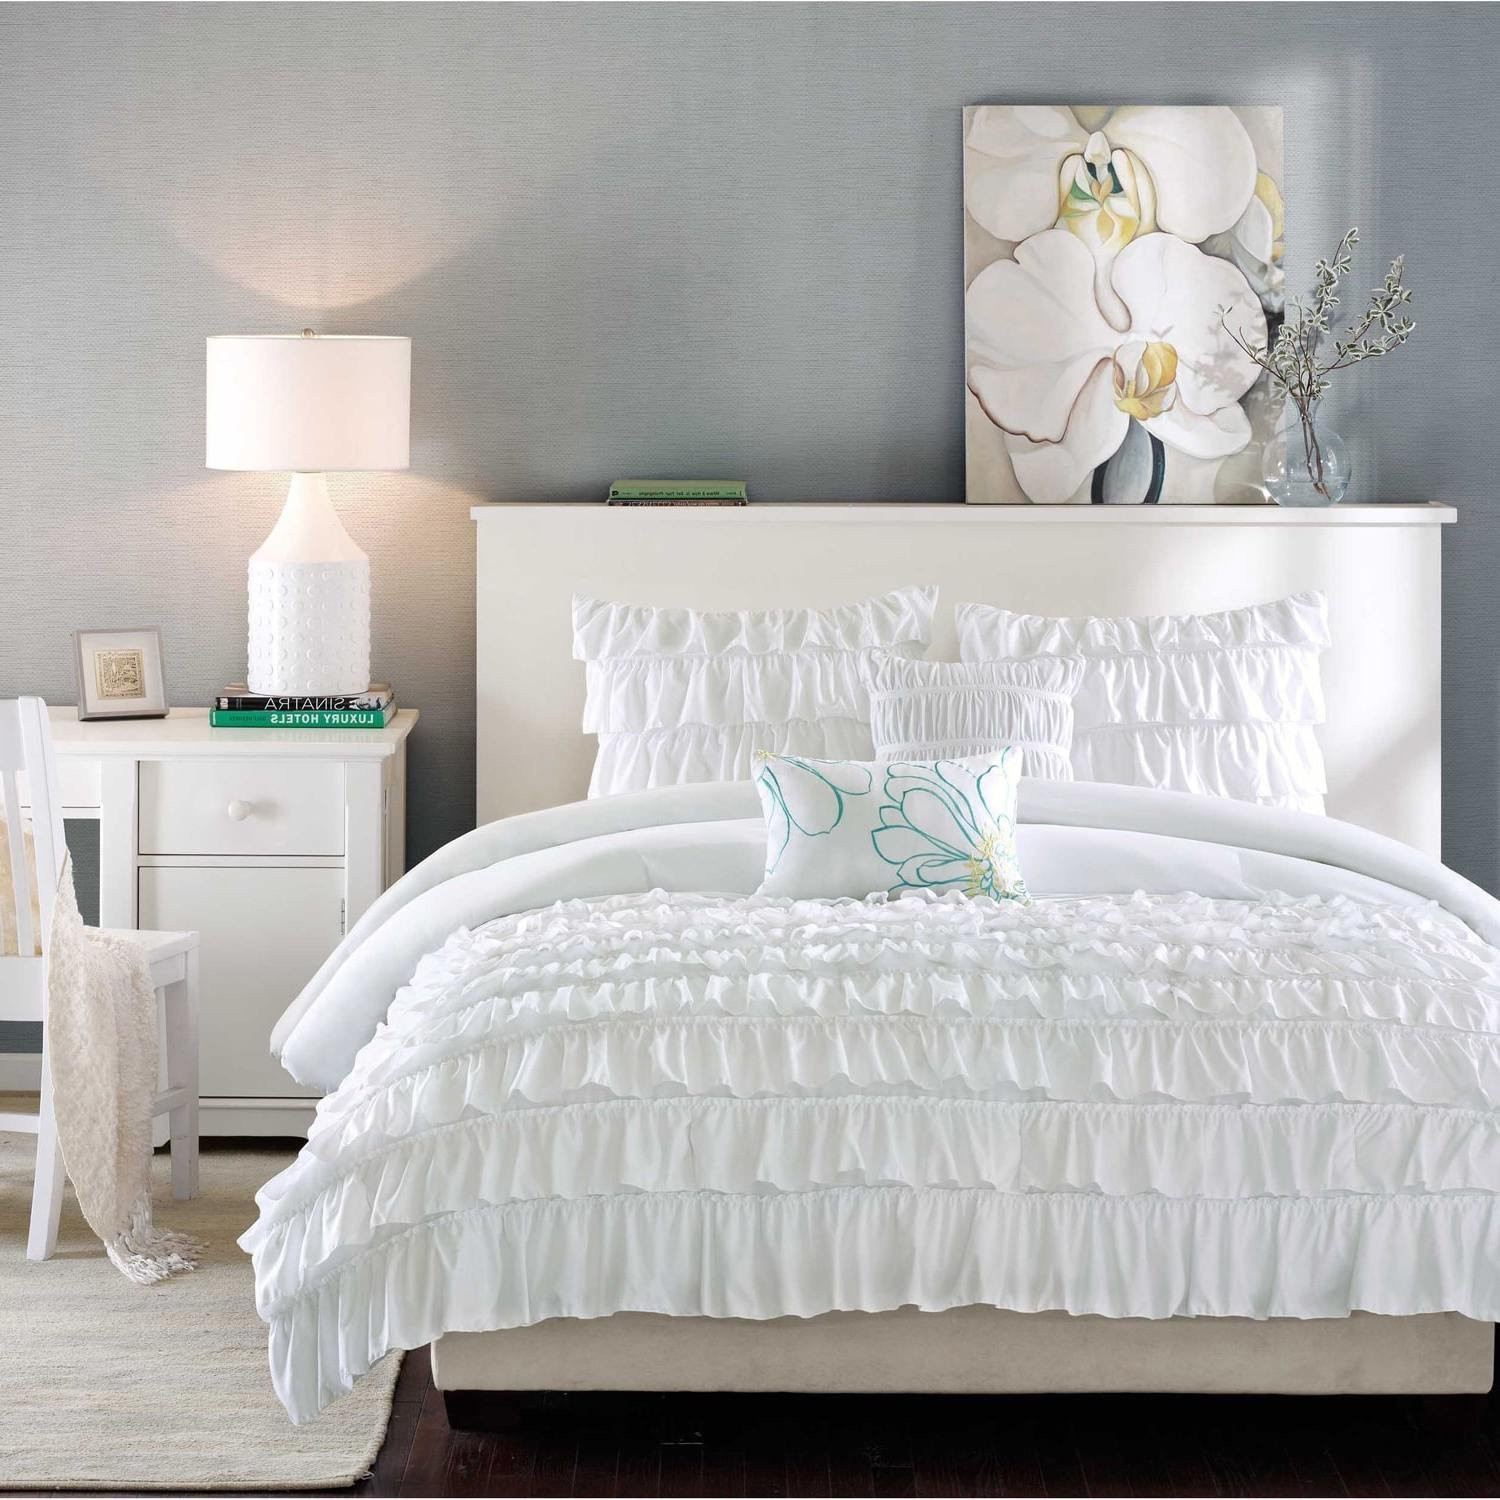 DP 5pc White Ruffled Stripes Pattern Comforter Full Queen Set, Girls, Chic Flowing Ruffles Lines Design, Luxury Modern Bedrooms, Neutral Solid Color, Classic French Country